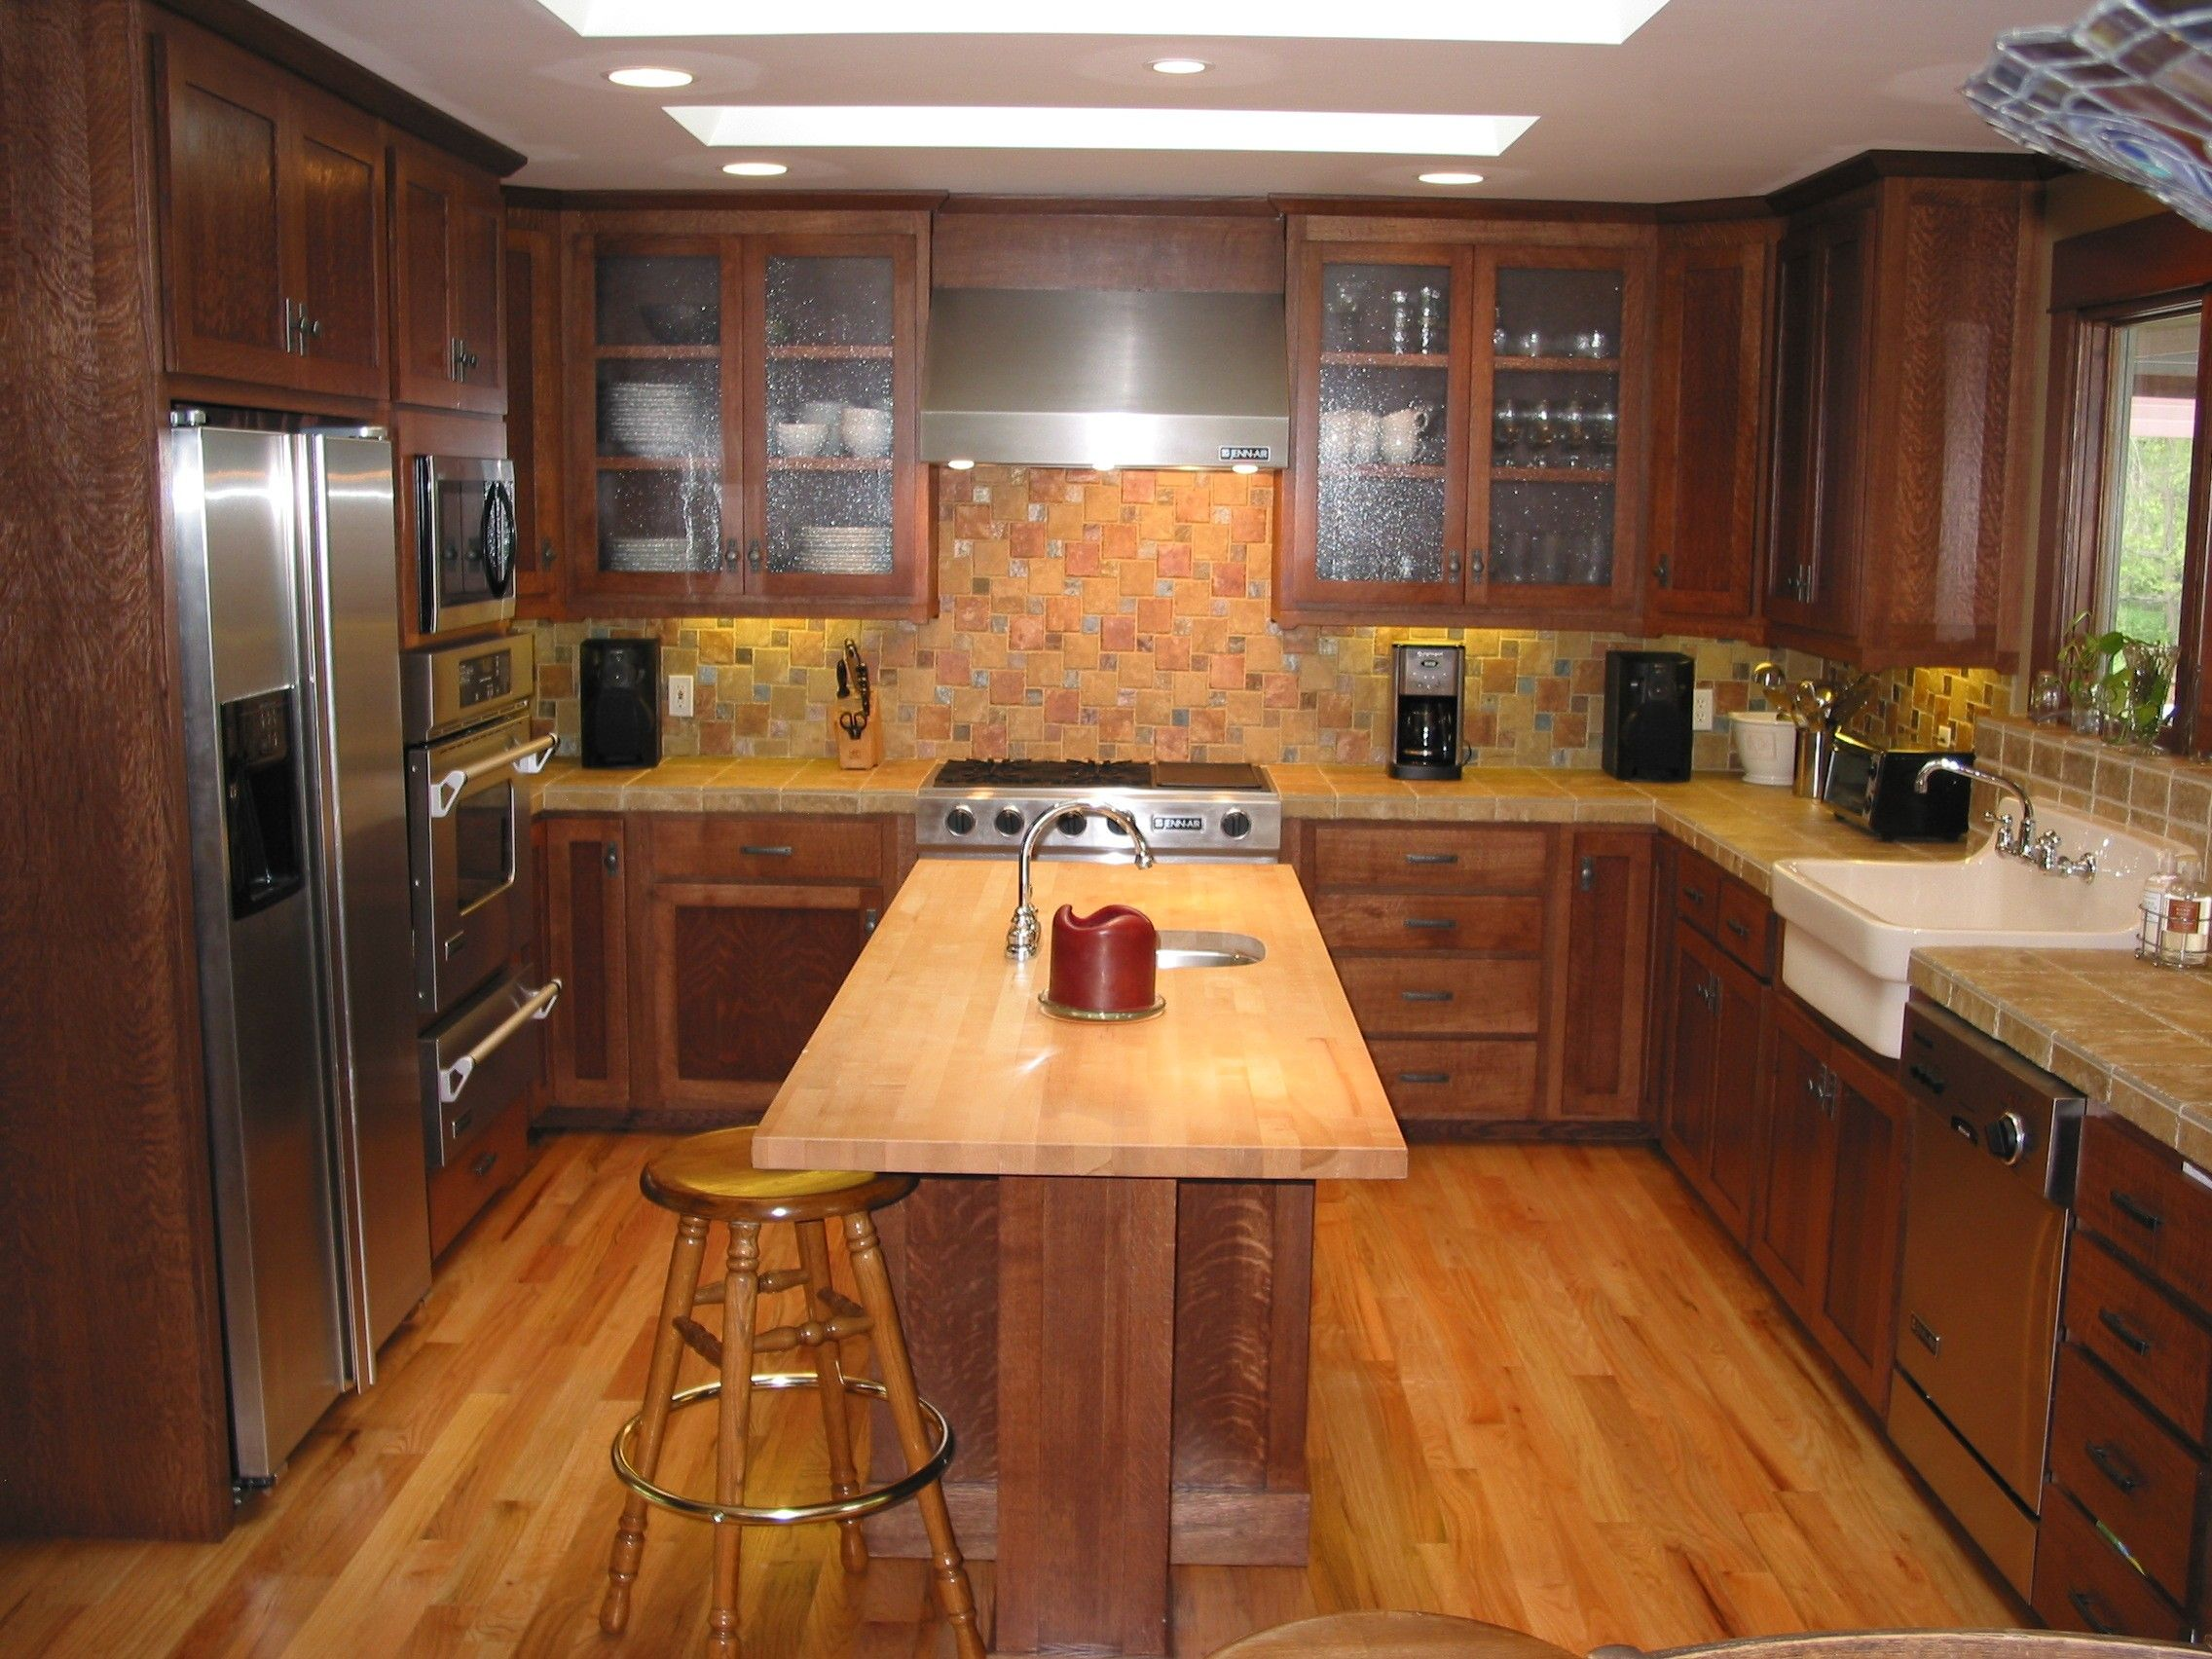 Quarter Sawn Oak Cabinets Kitchen Click On An Image Below To View Our Gallery